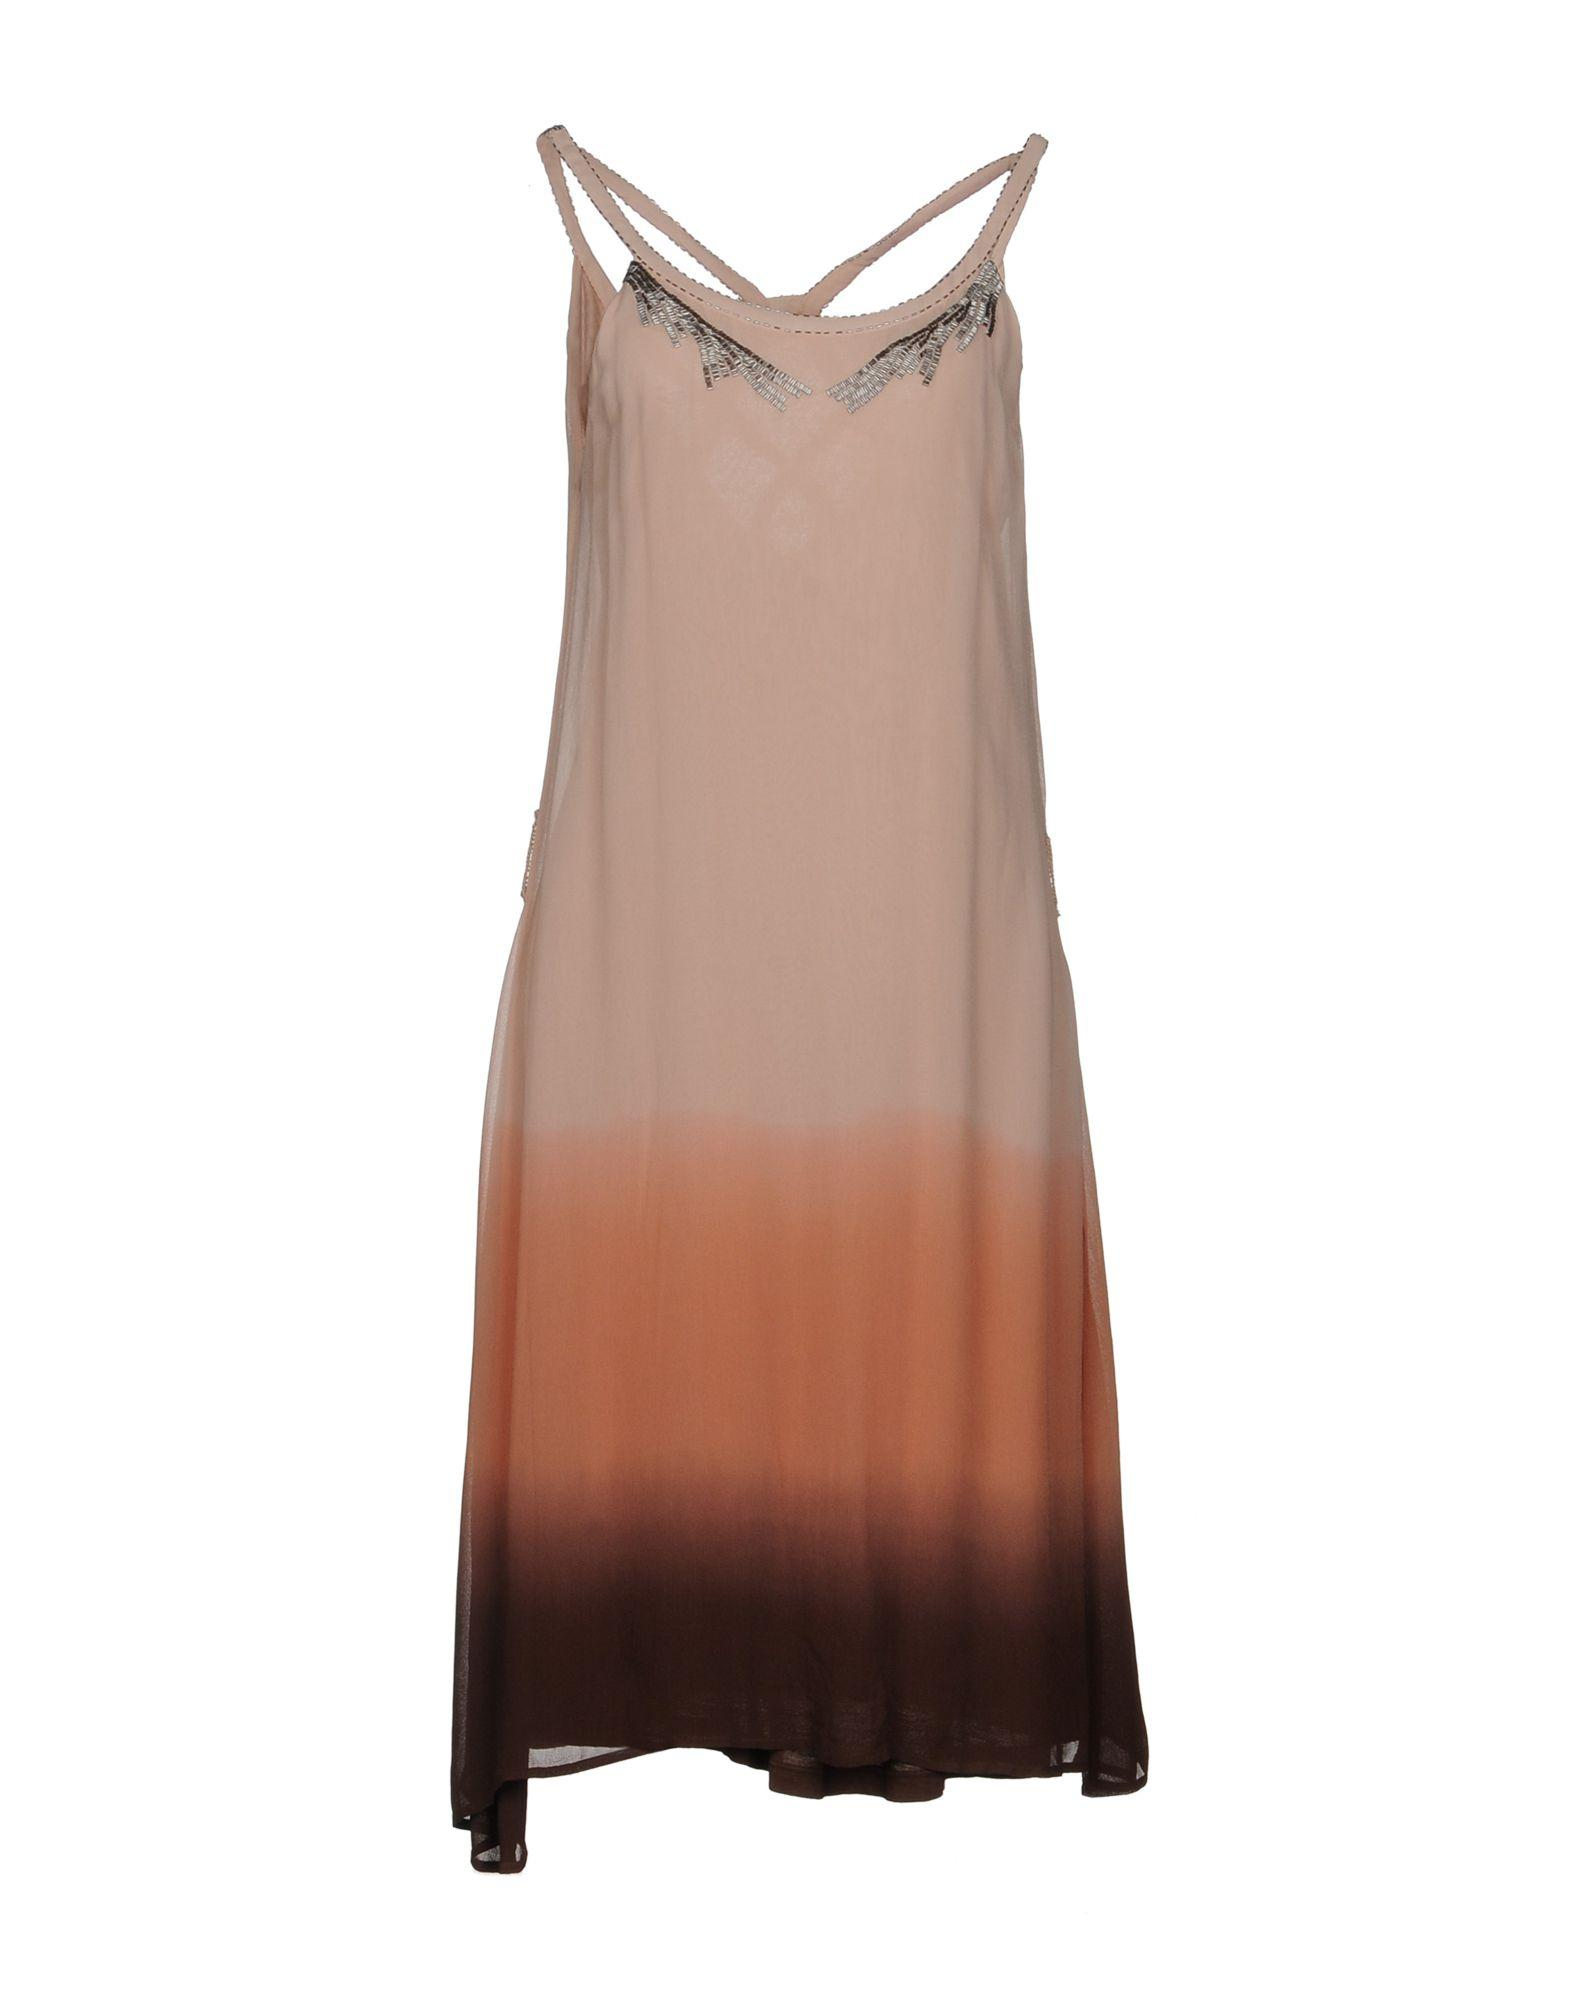 Guess Knee-length Dress In Pale Pink